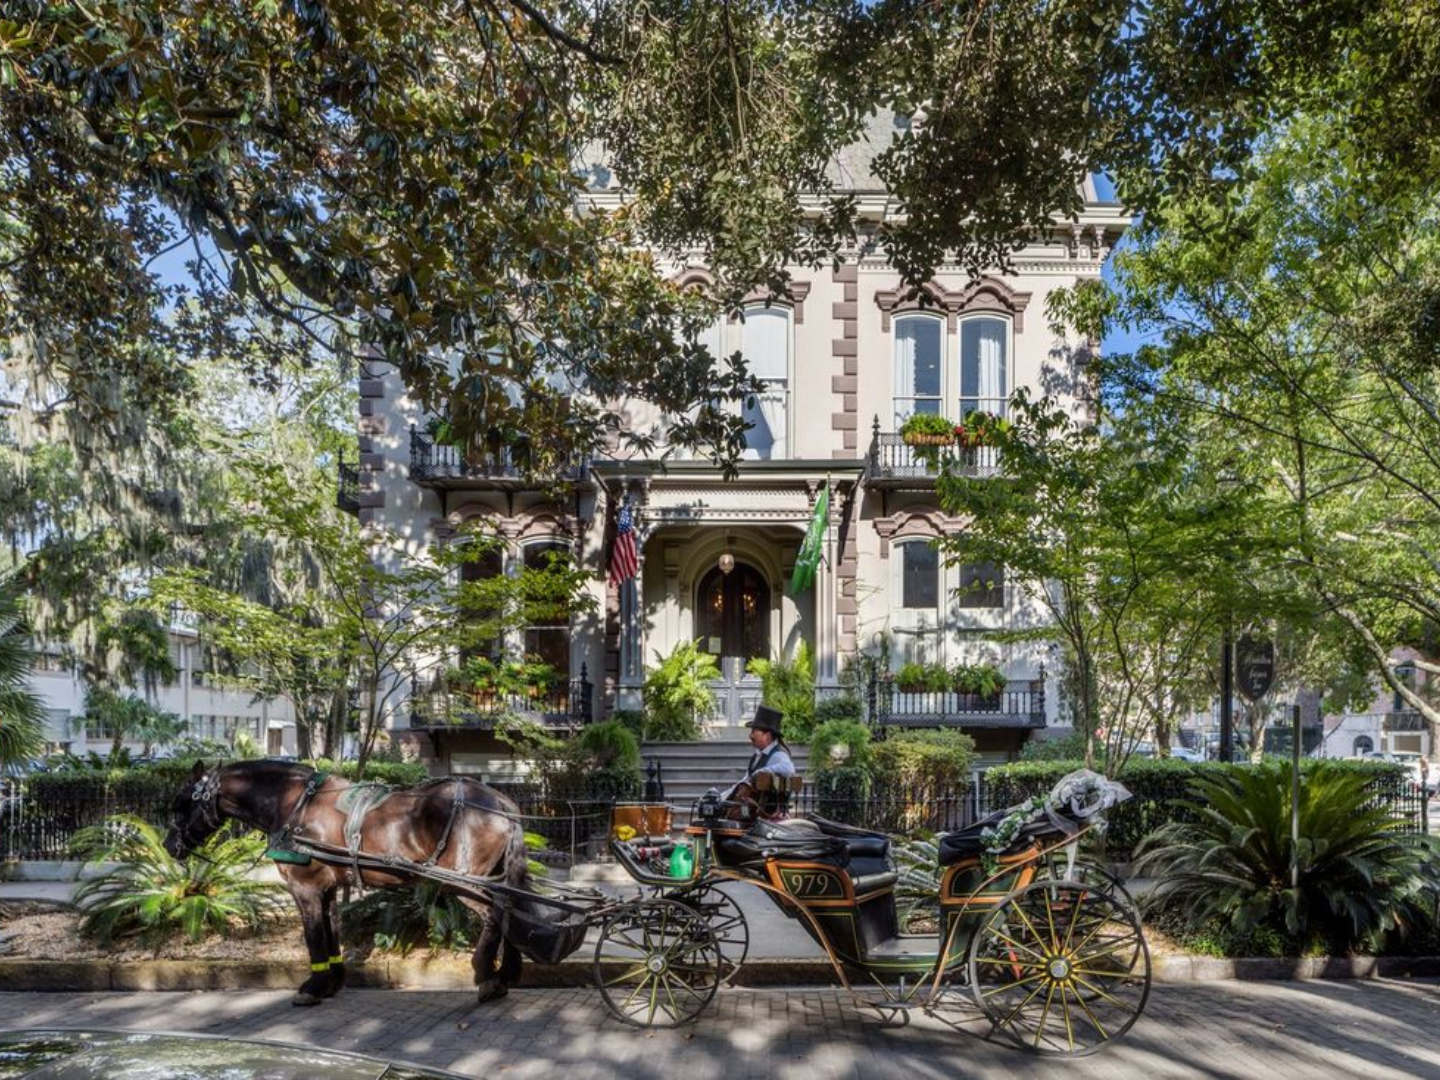 A close up of a horse drawn carriage in front of a tree at Hamilton-Turner Inn.